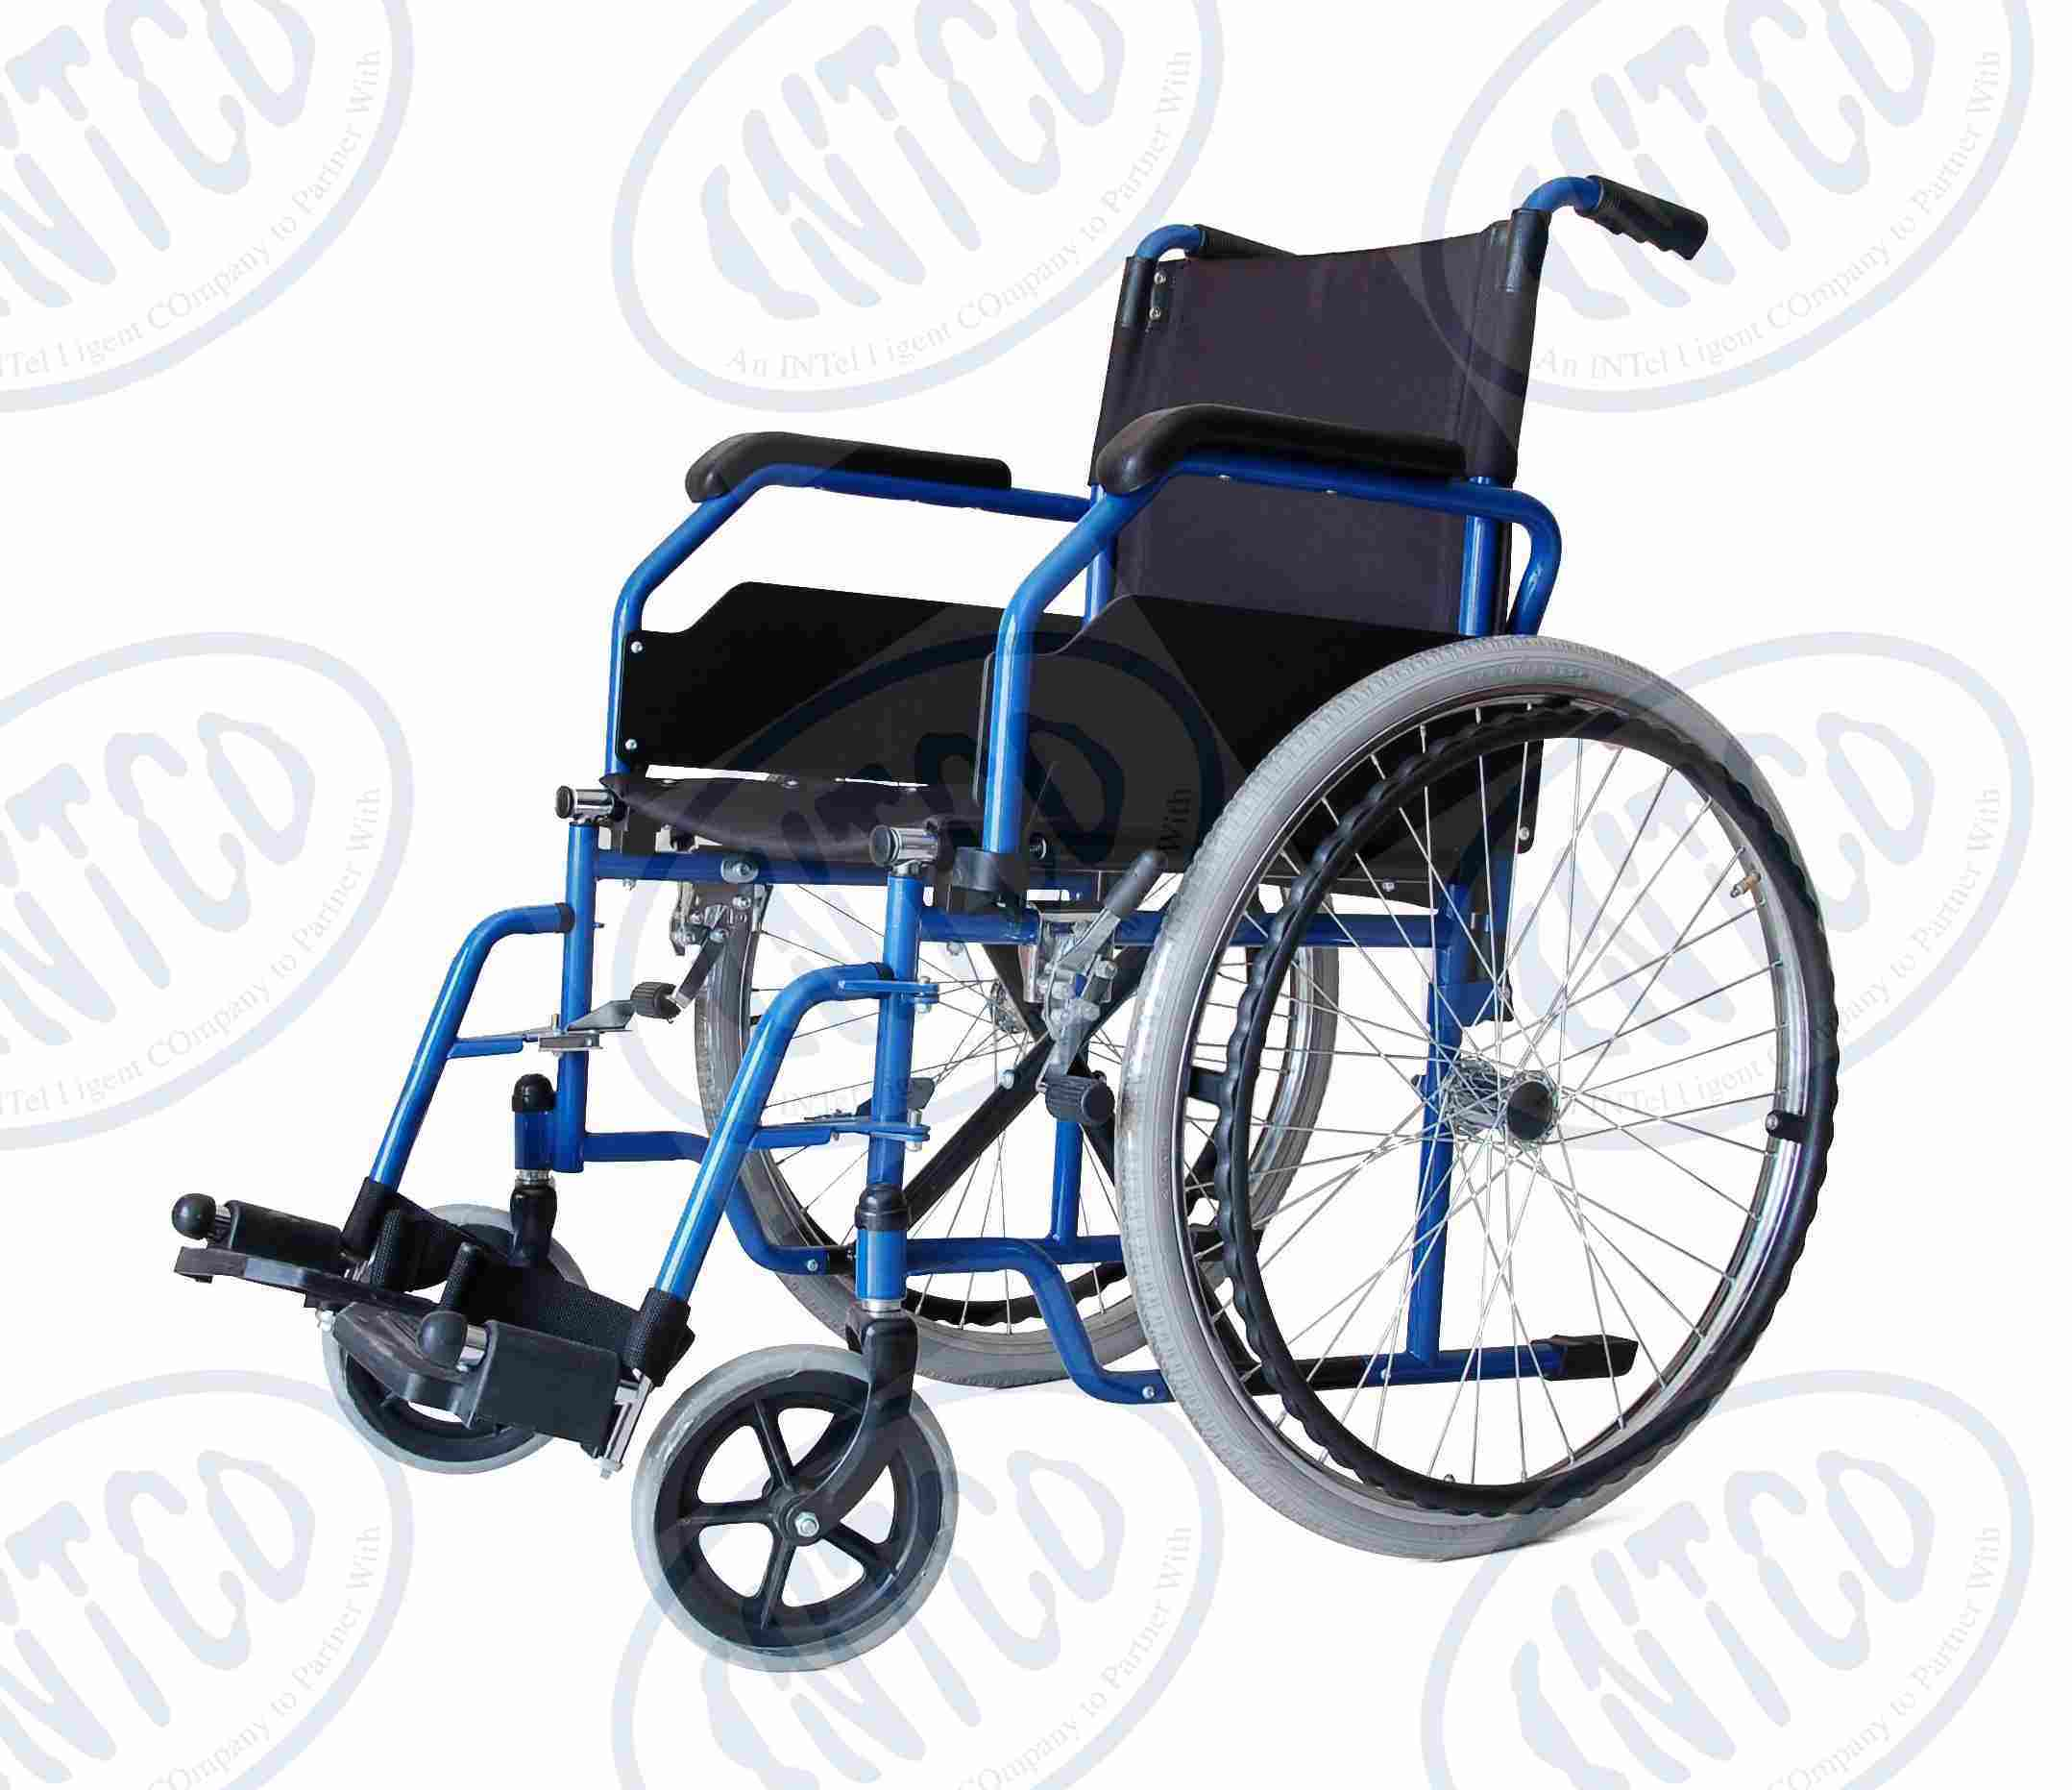 How to apply for a wheelchair van grant for free or low cost